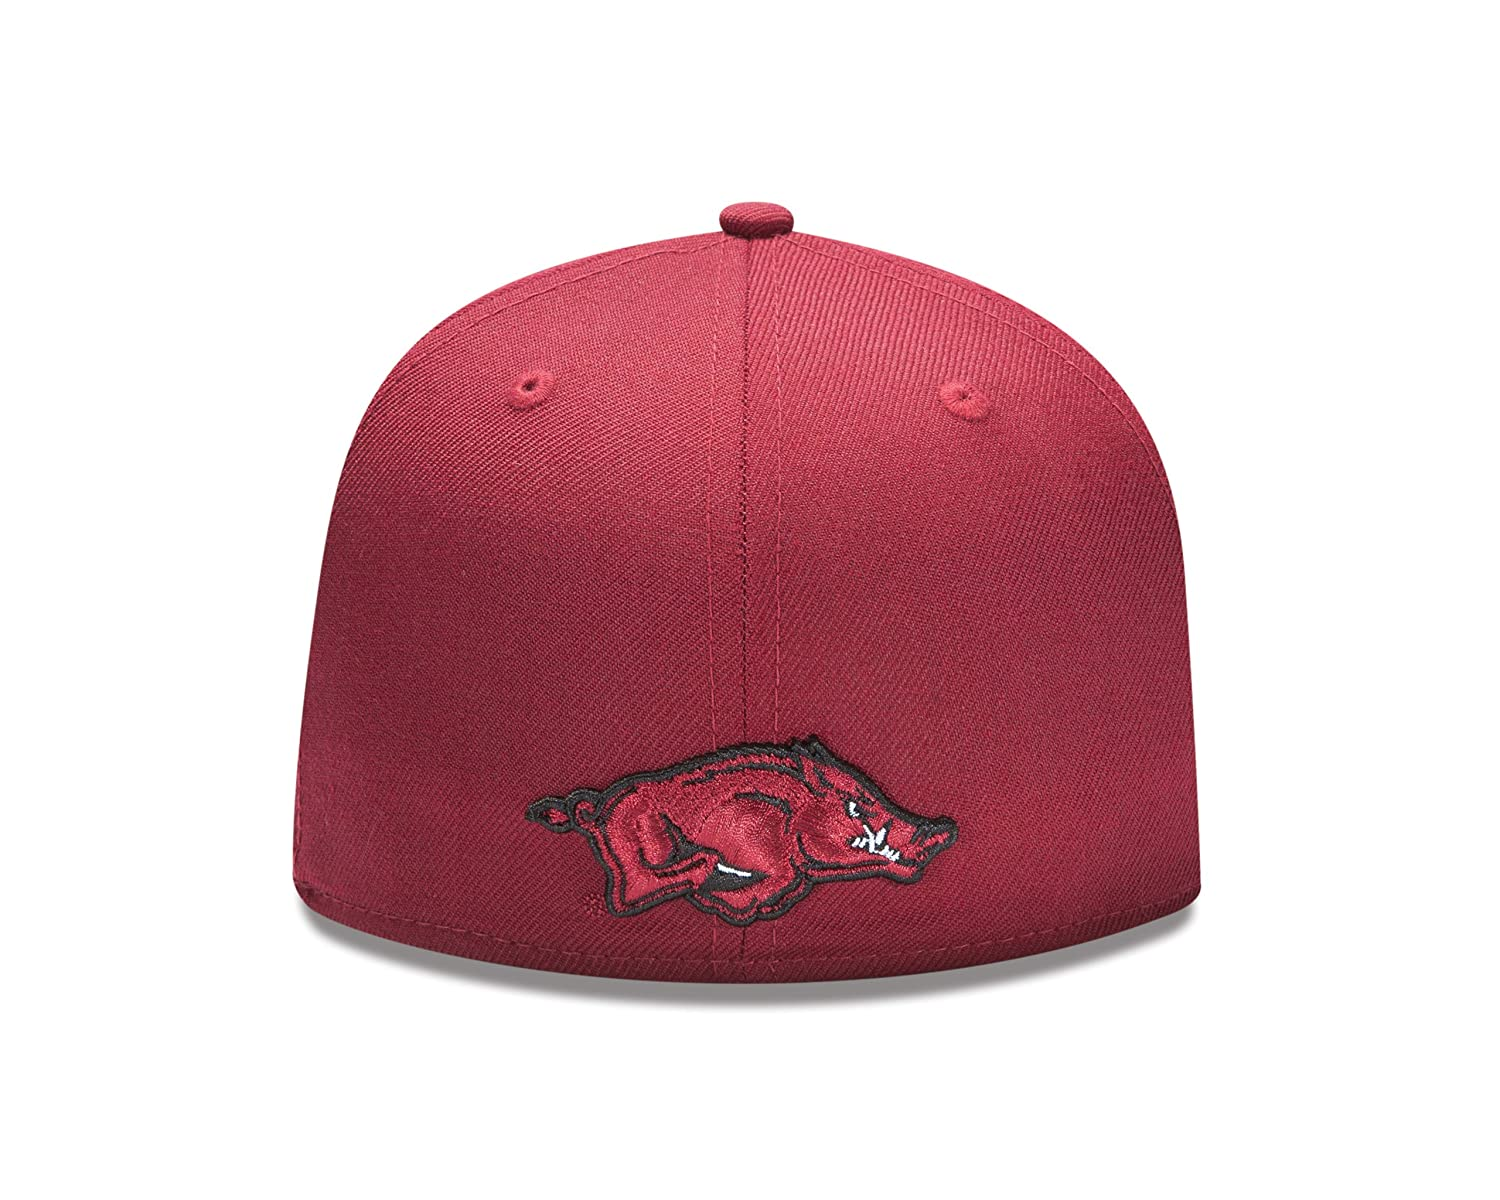 premium selection 57737 230a9 Amazon.com   New Era NCAA College Basic 59FIFTY Fitted Cap   Sports    Outdoors